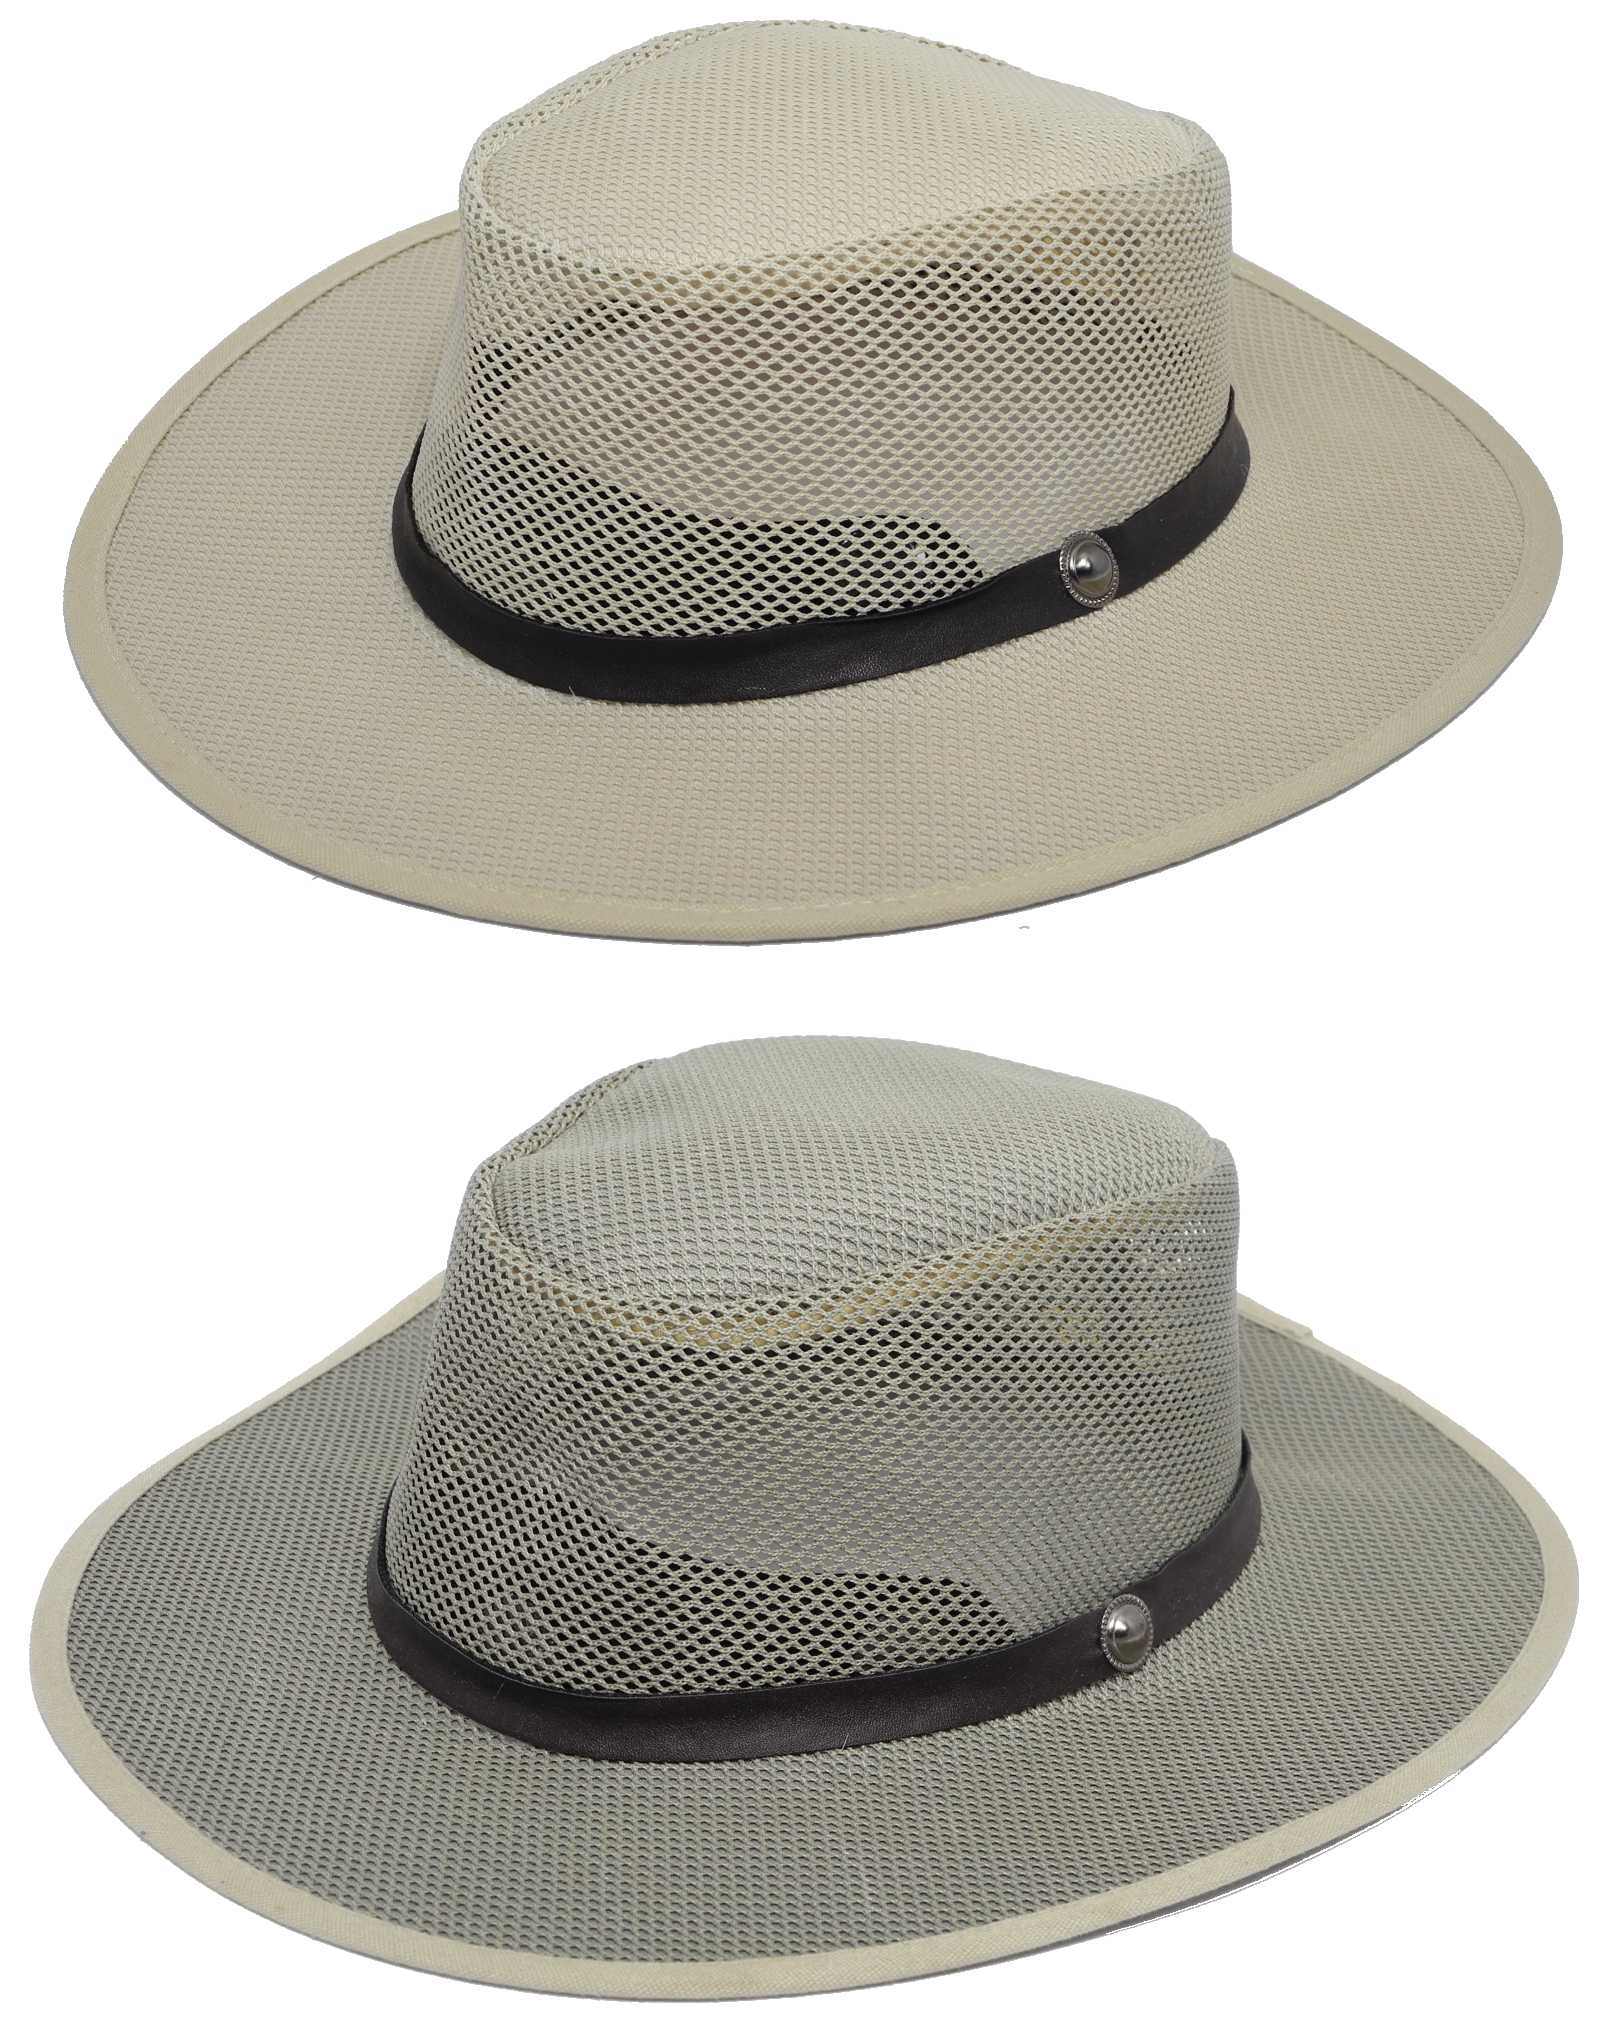 Mens-Lightweight-Mesh-Aussie-Bush-Fedora-Sun-Hat-Soakable-Adjustable-Size-M-L